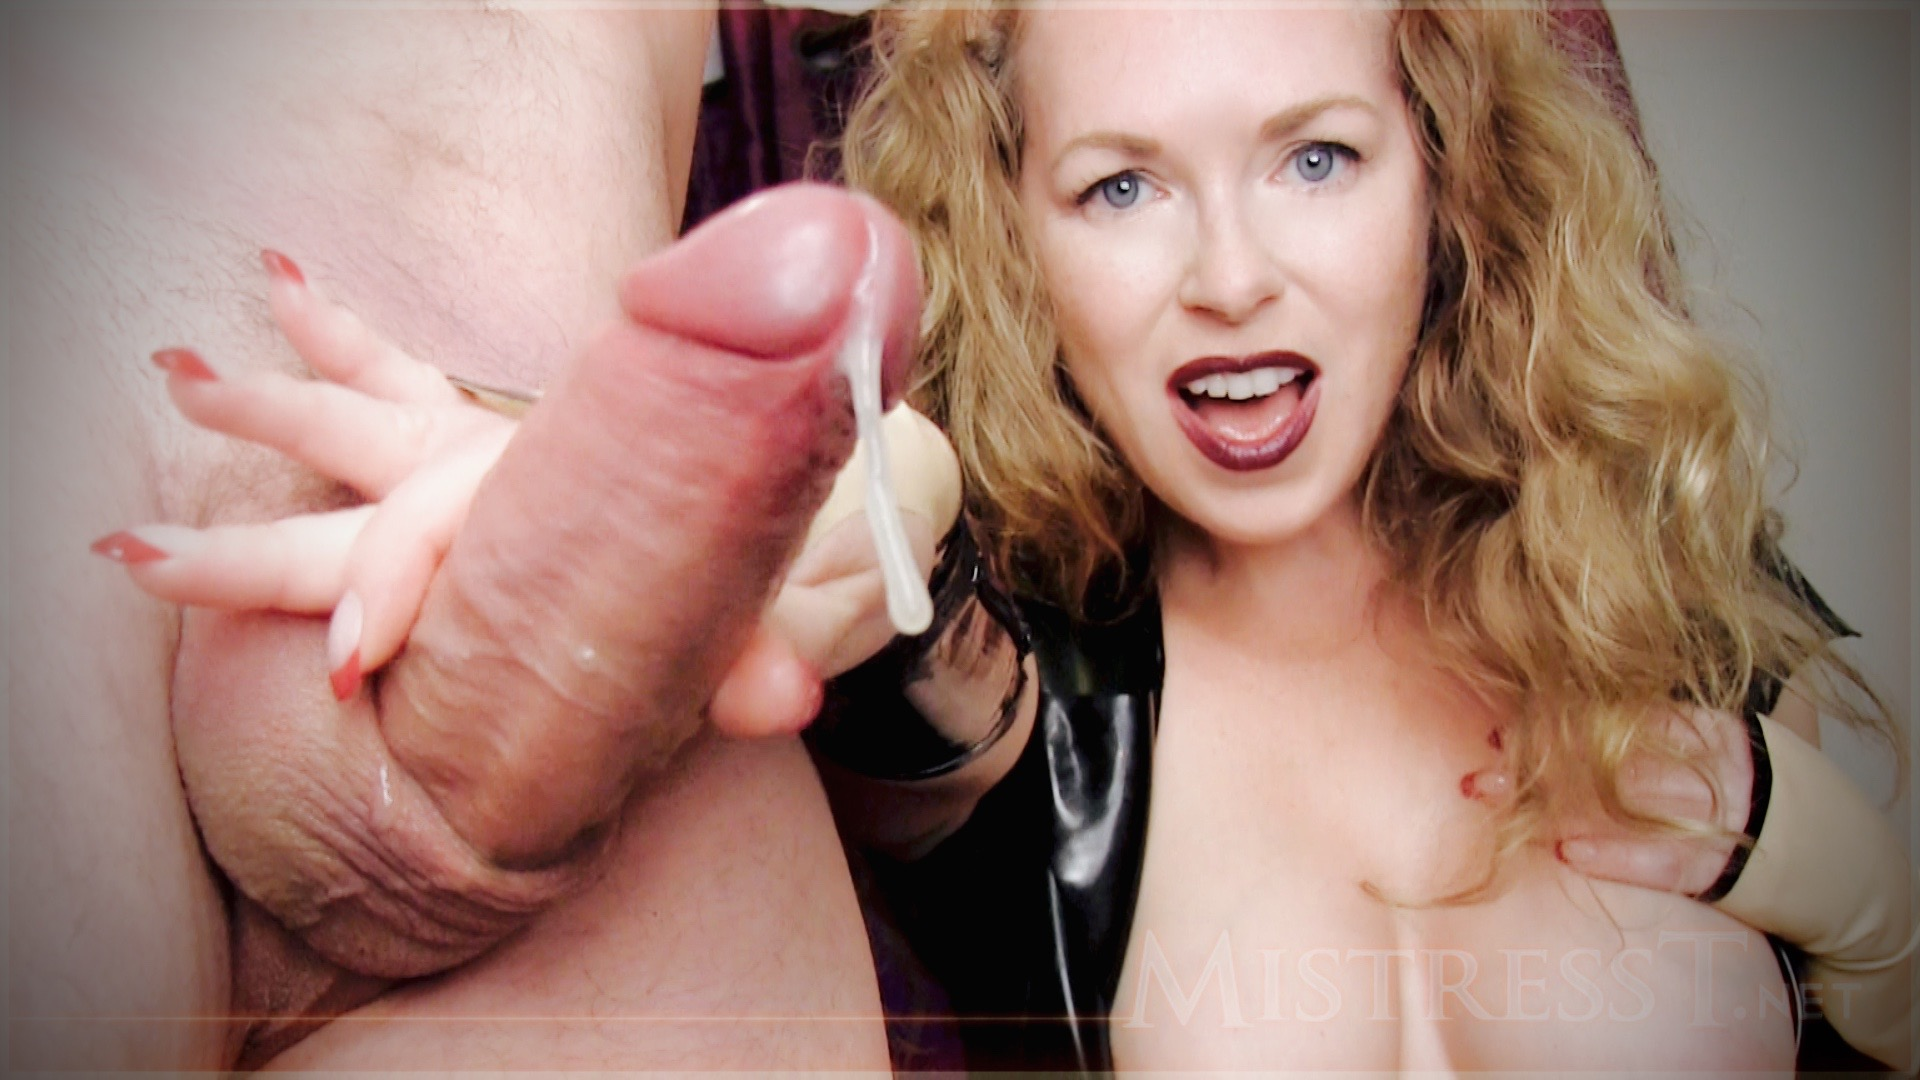 Shemale Humiliation Tube Movies Free - Quality Porn-5458